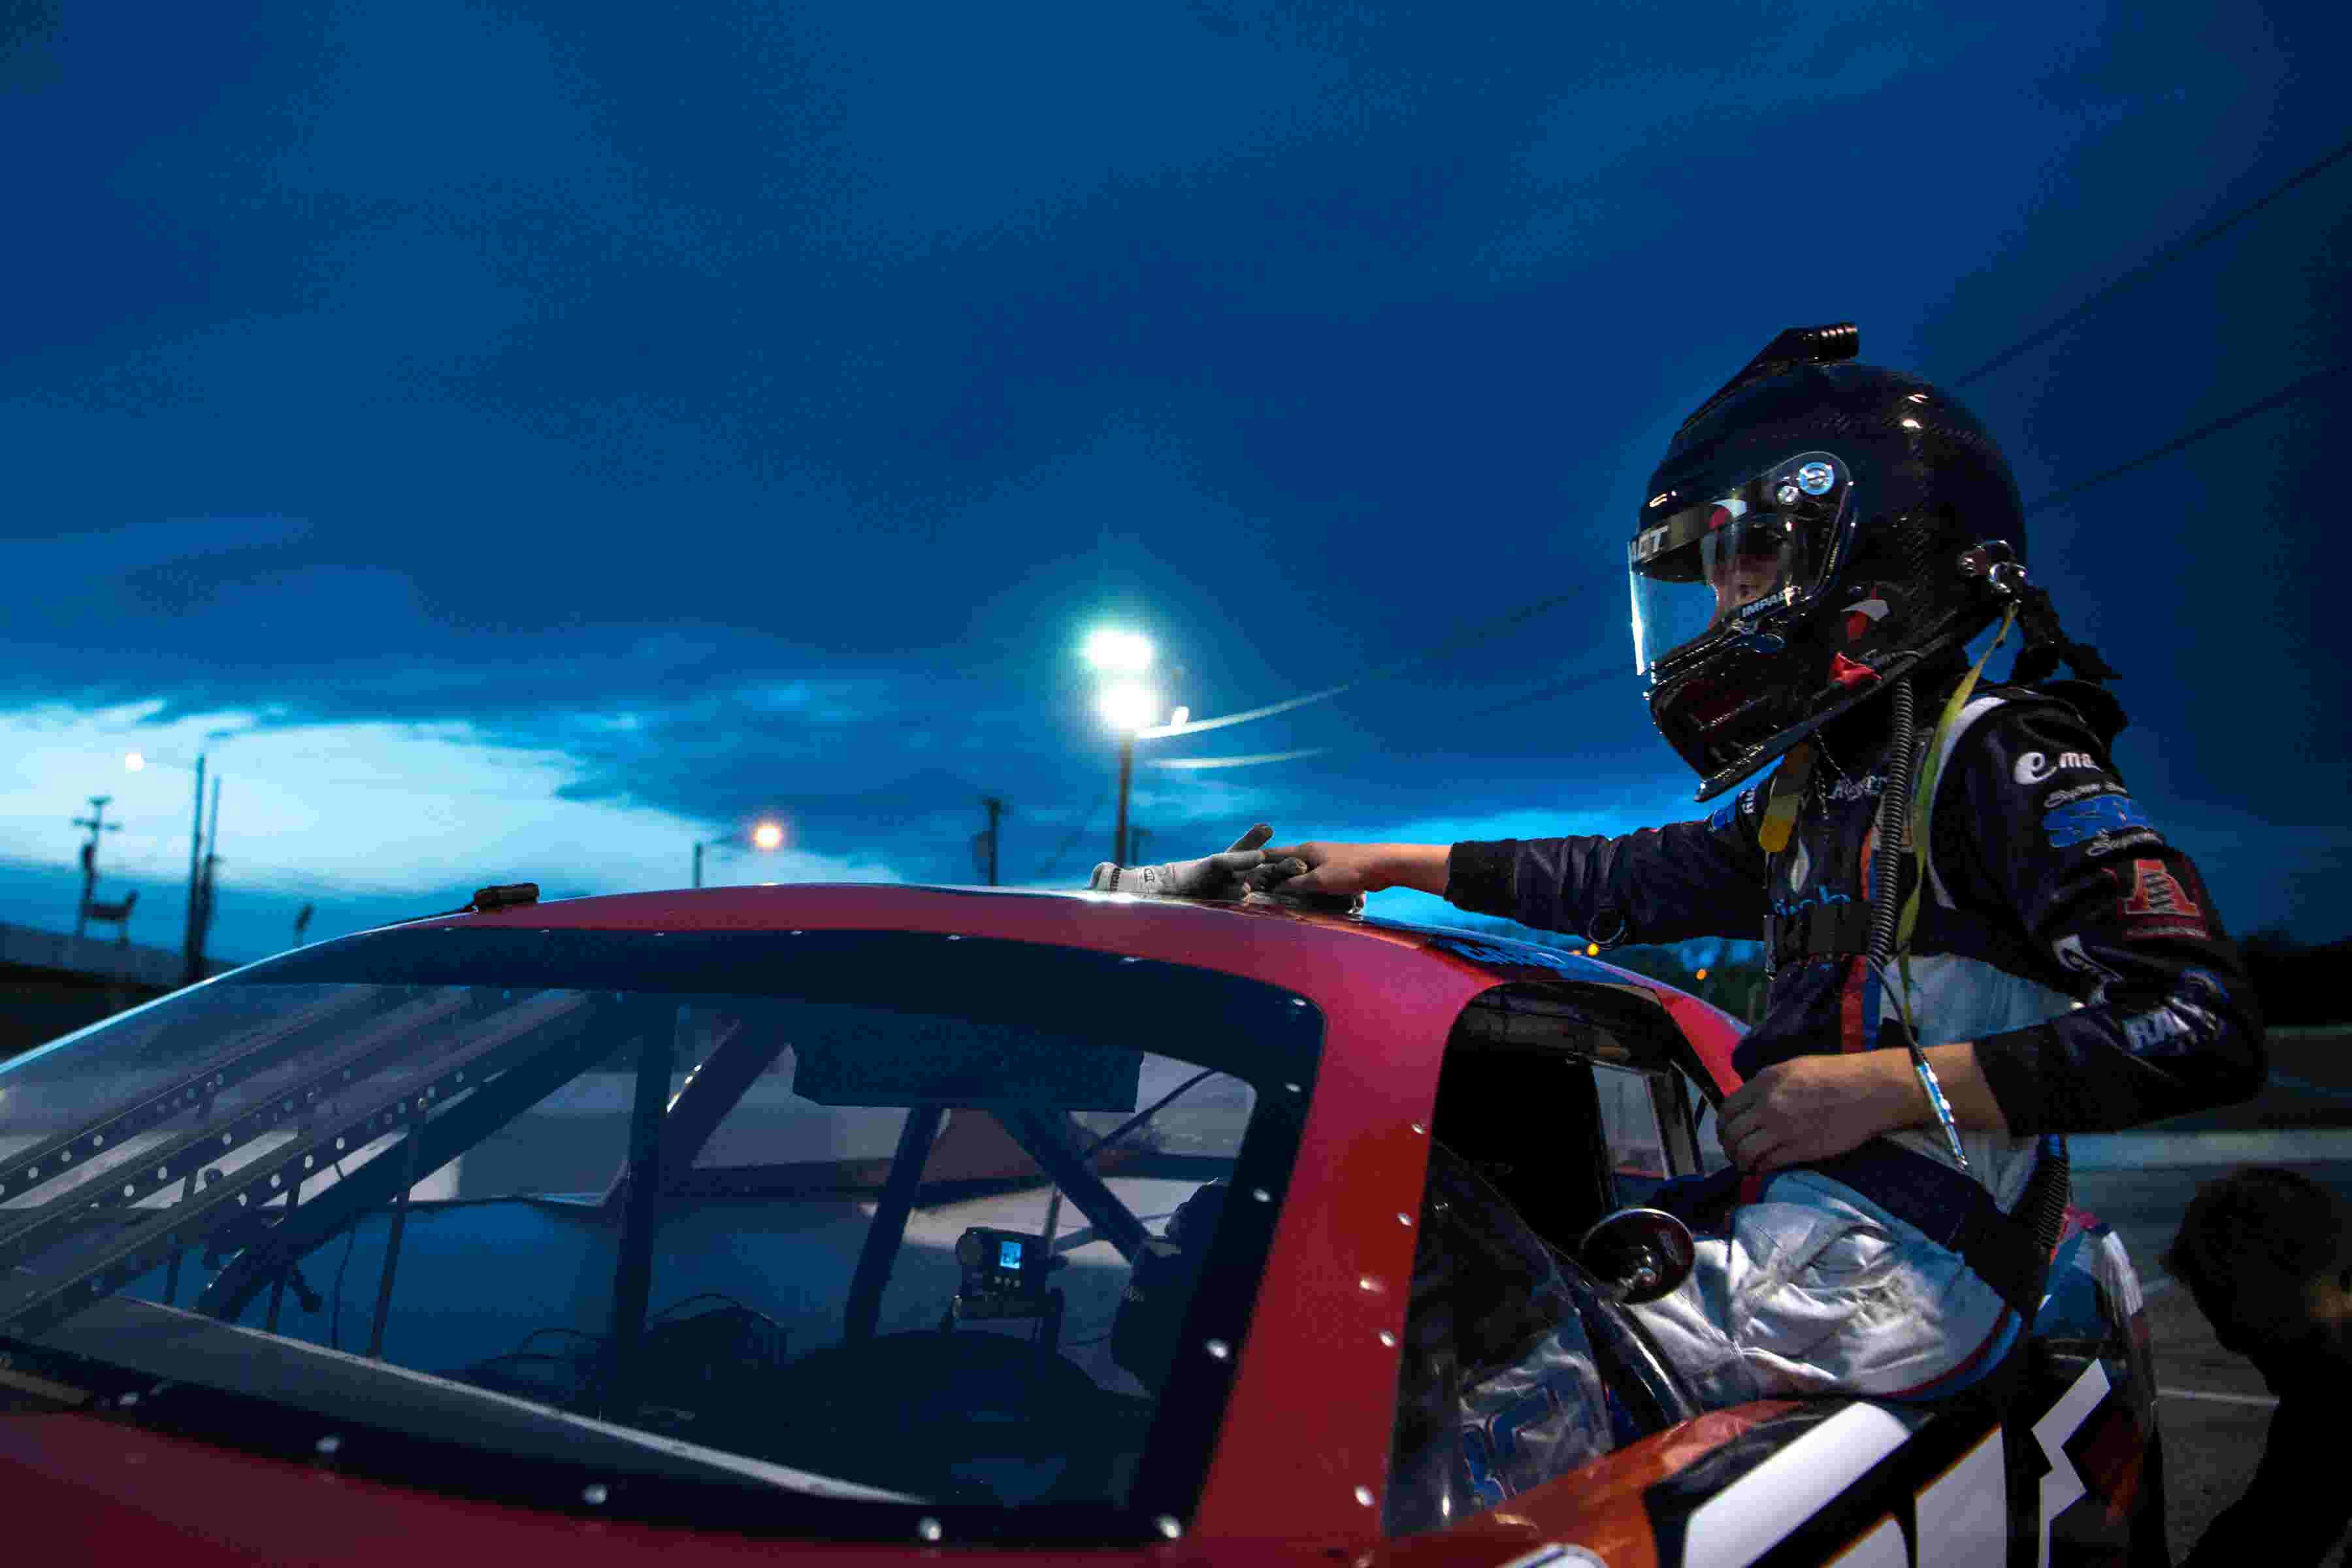 A 78-pound 13-year-old will set Fairgrounds Speedway Nashville youngest driver record